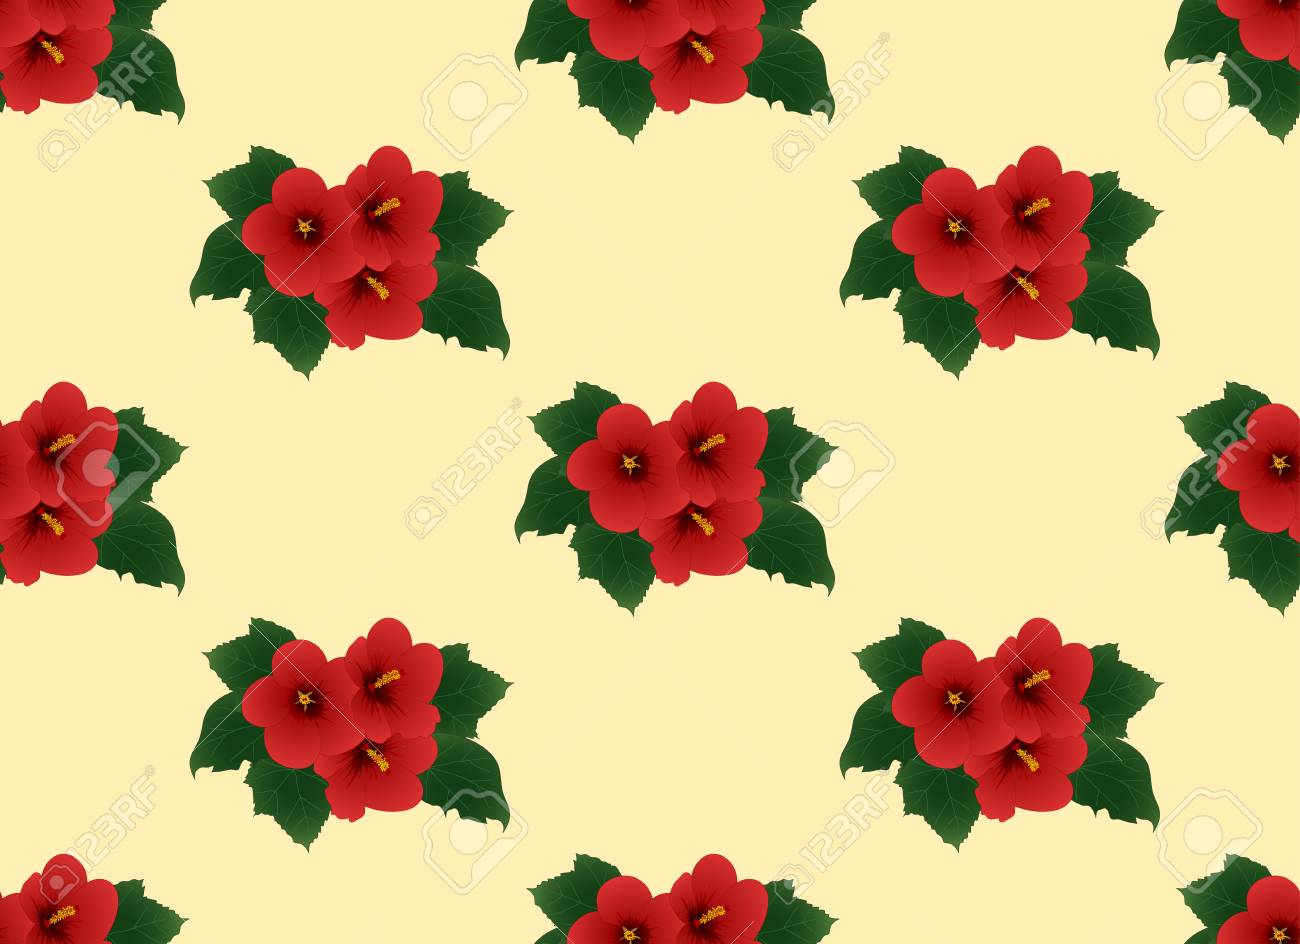 Red Hibiscus Syriacus Rose Of Sharon On Ivory Beige Background